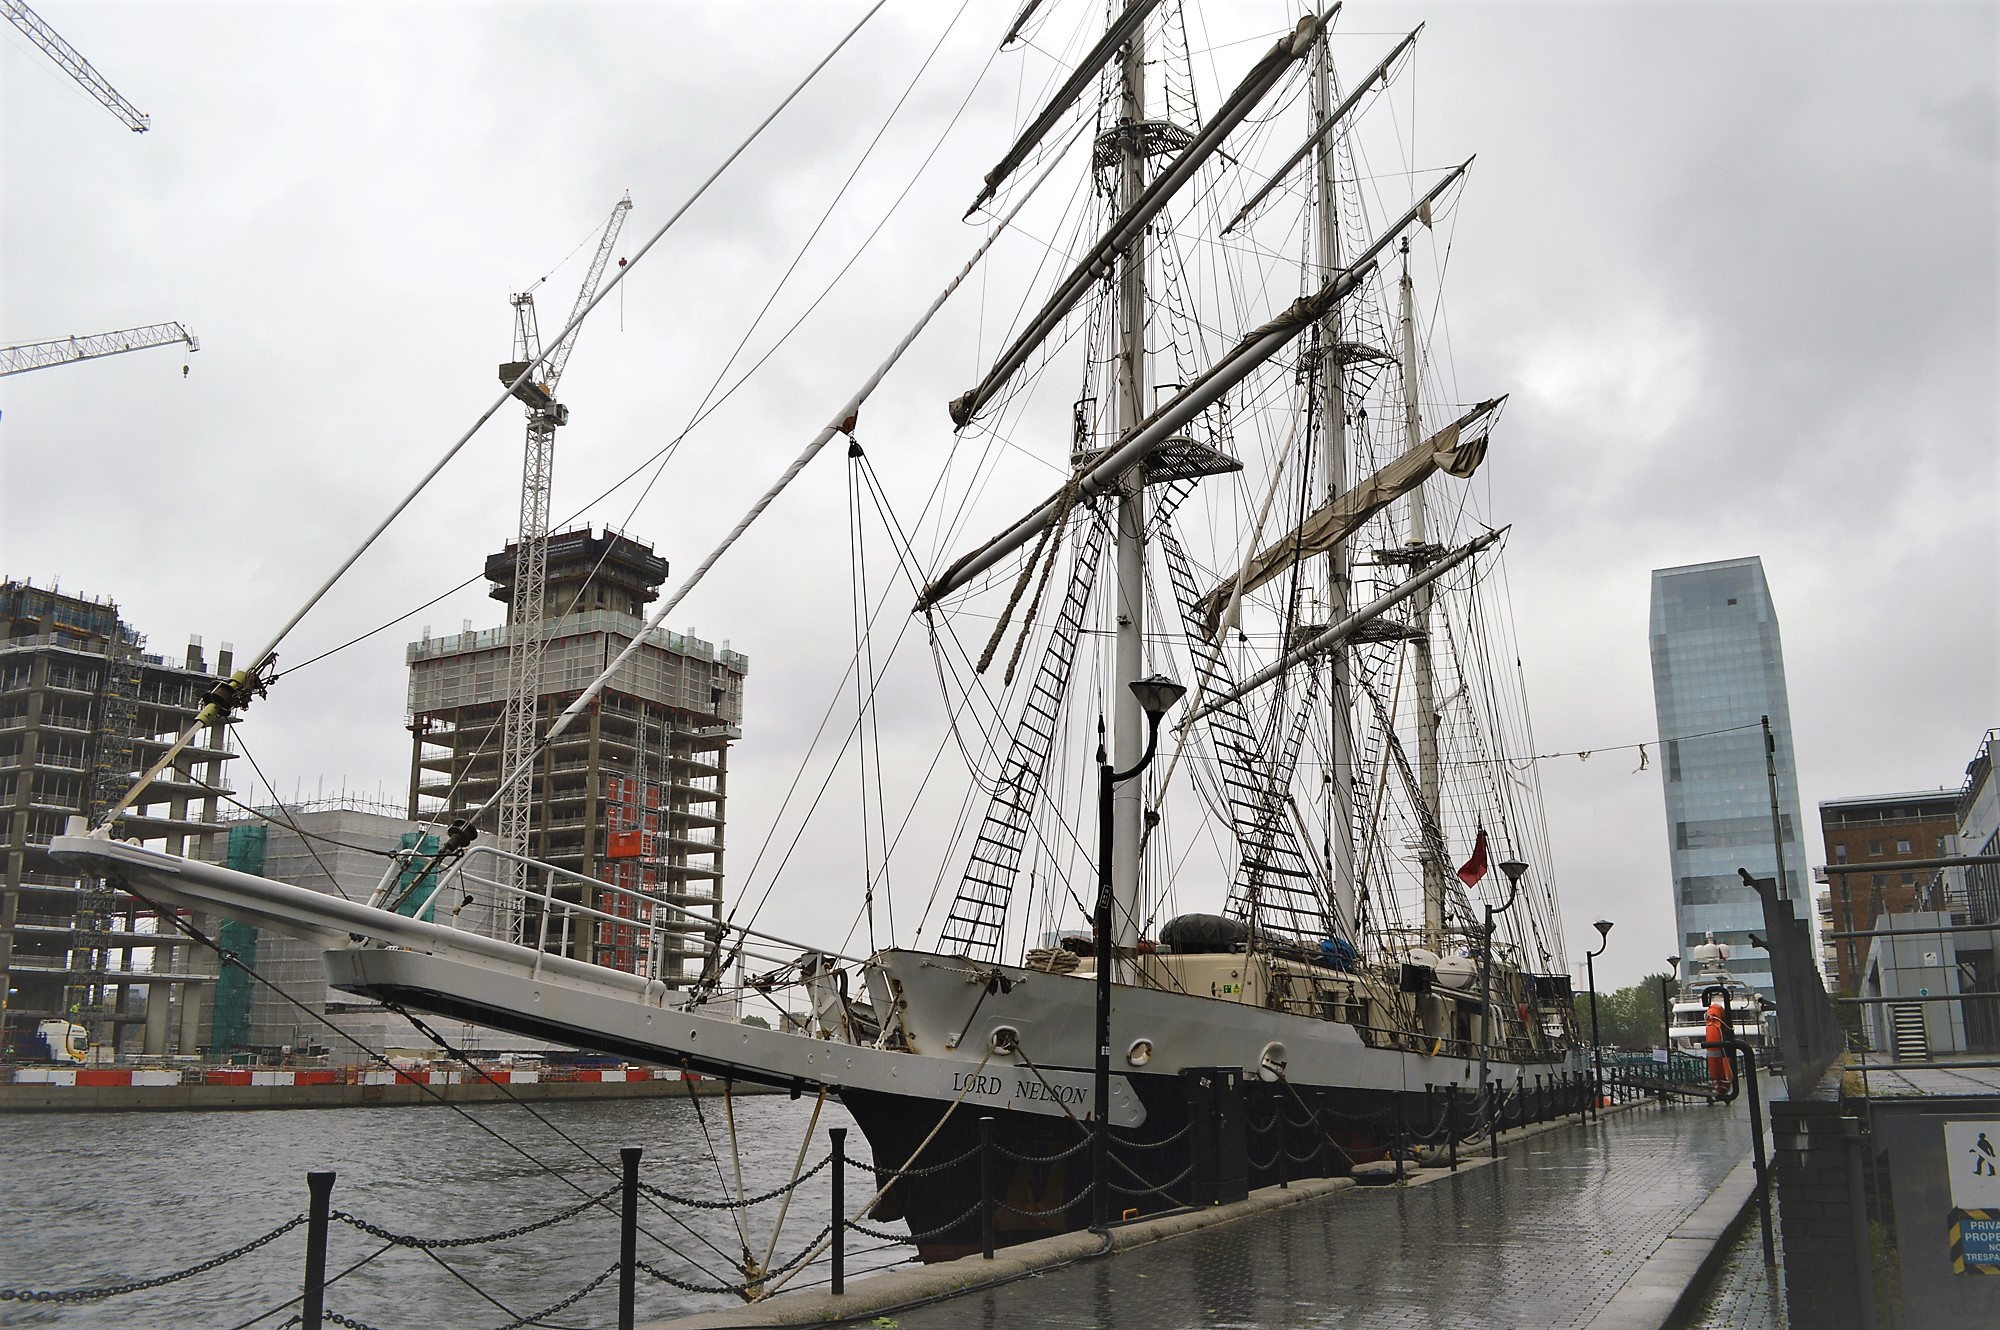 The Lord Nelson tall ship in Canary Wharf